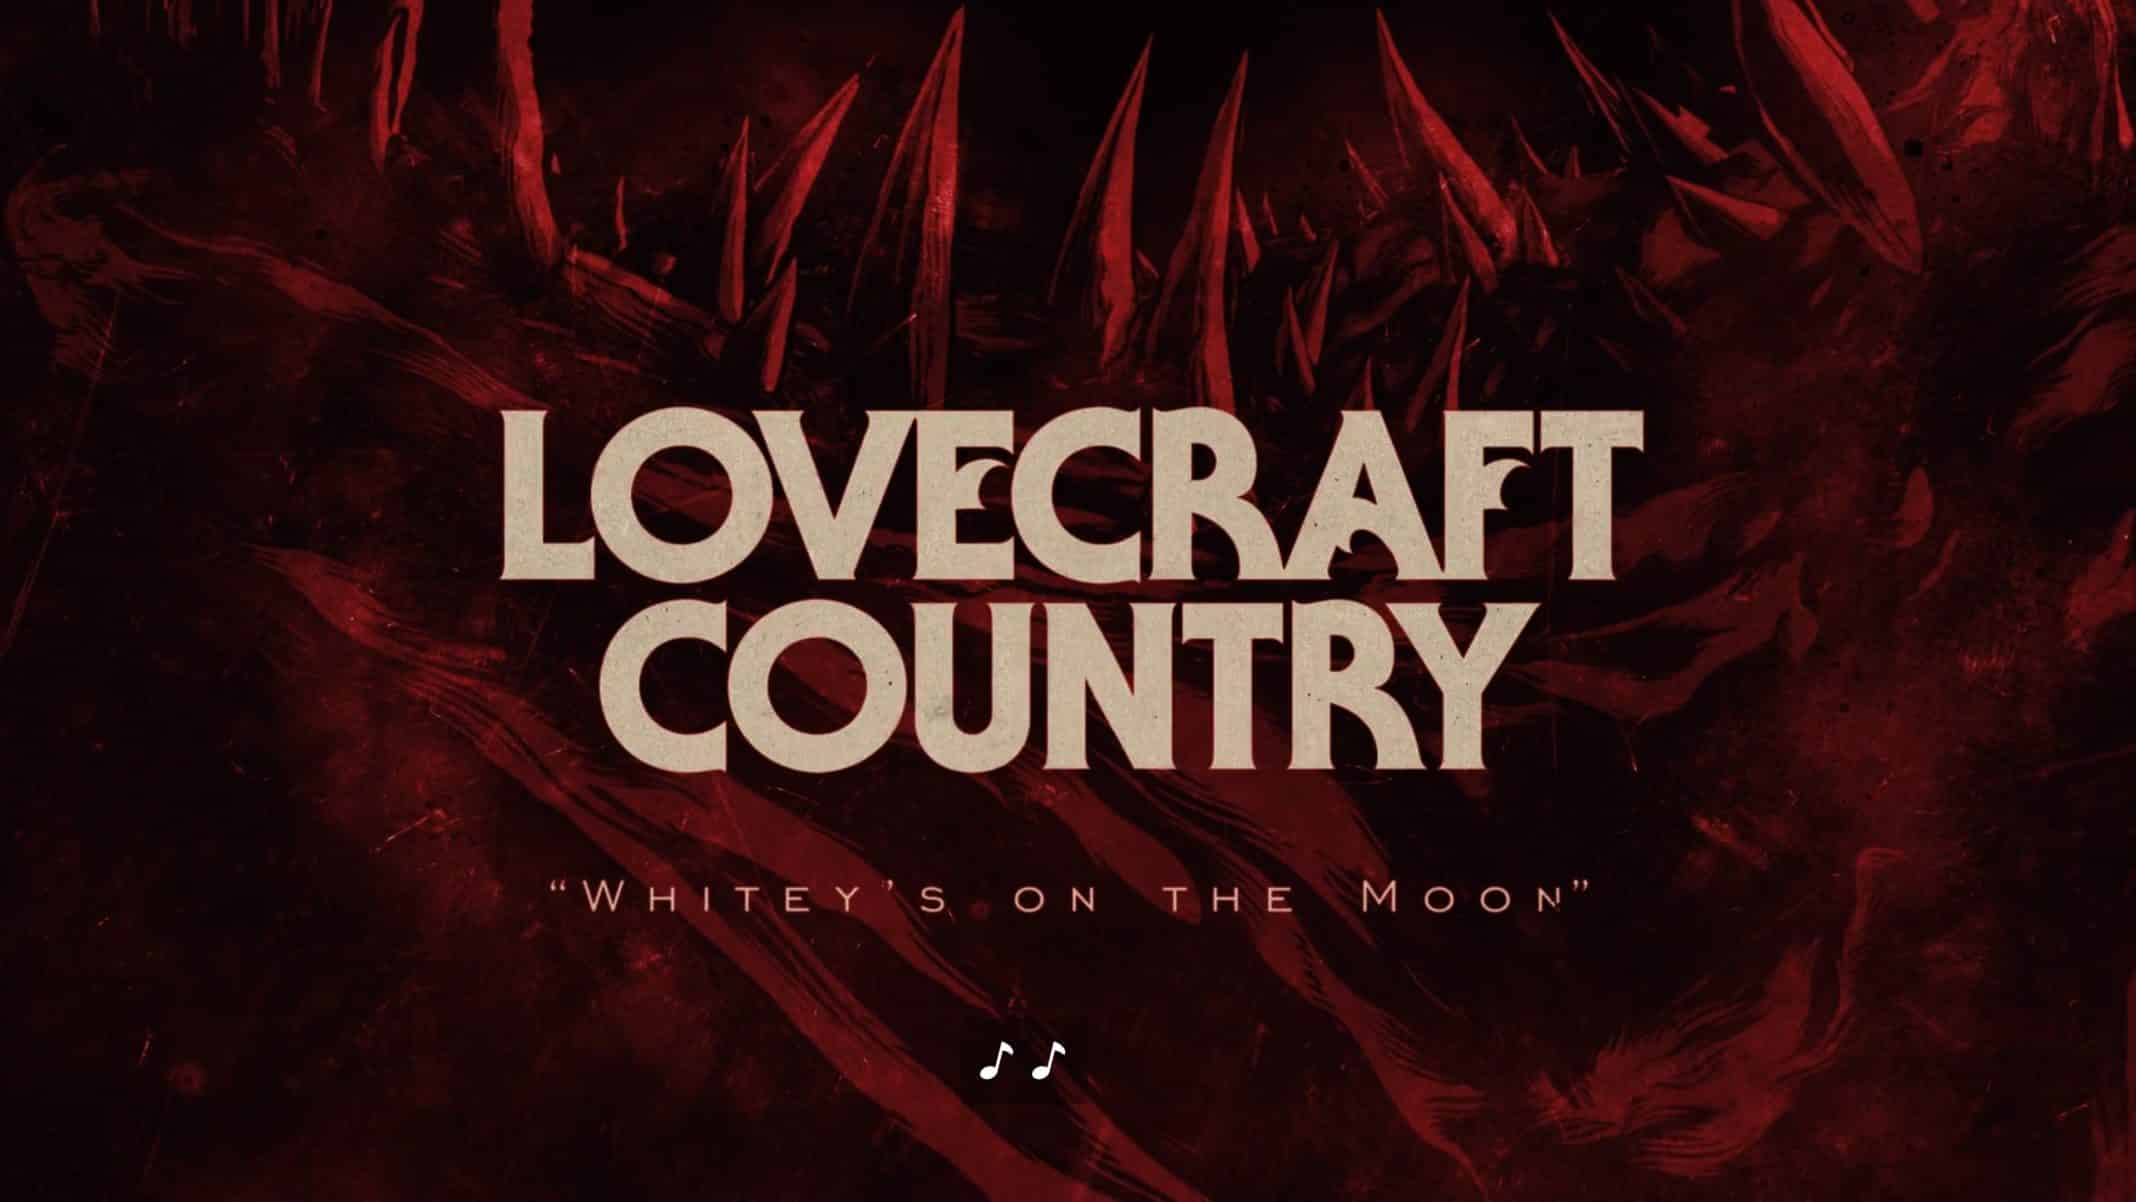 Title Card - Lovercraft Country Season 1 Episode 2 Whitey's On The Moon